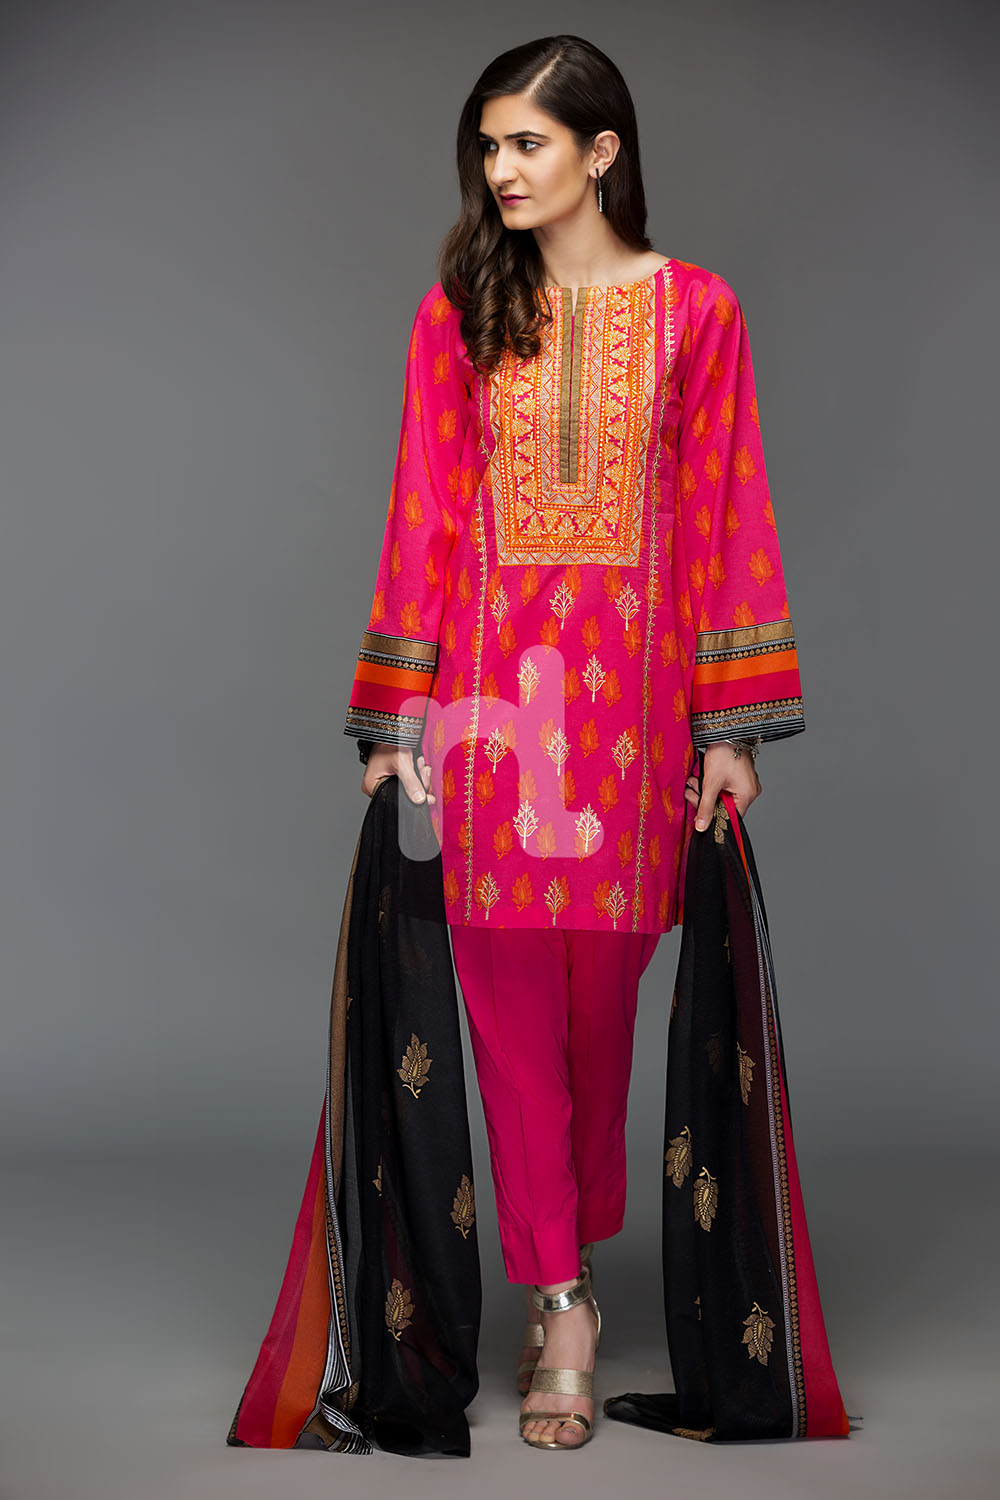 ab764e6ca2 Energetic and contemporary green colored three piece unstitched lawn dress  is paired with a graceful lawn shirt, two embroidered motifs, printed  krinckle ...